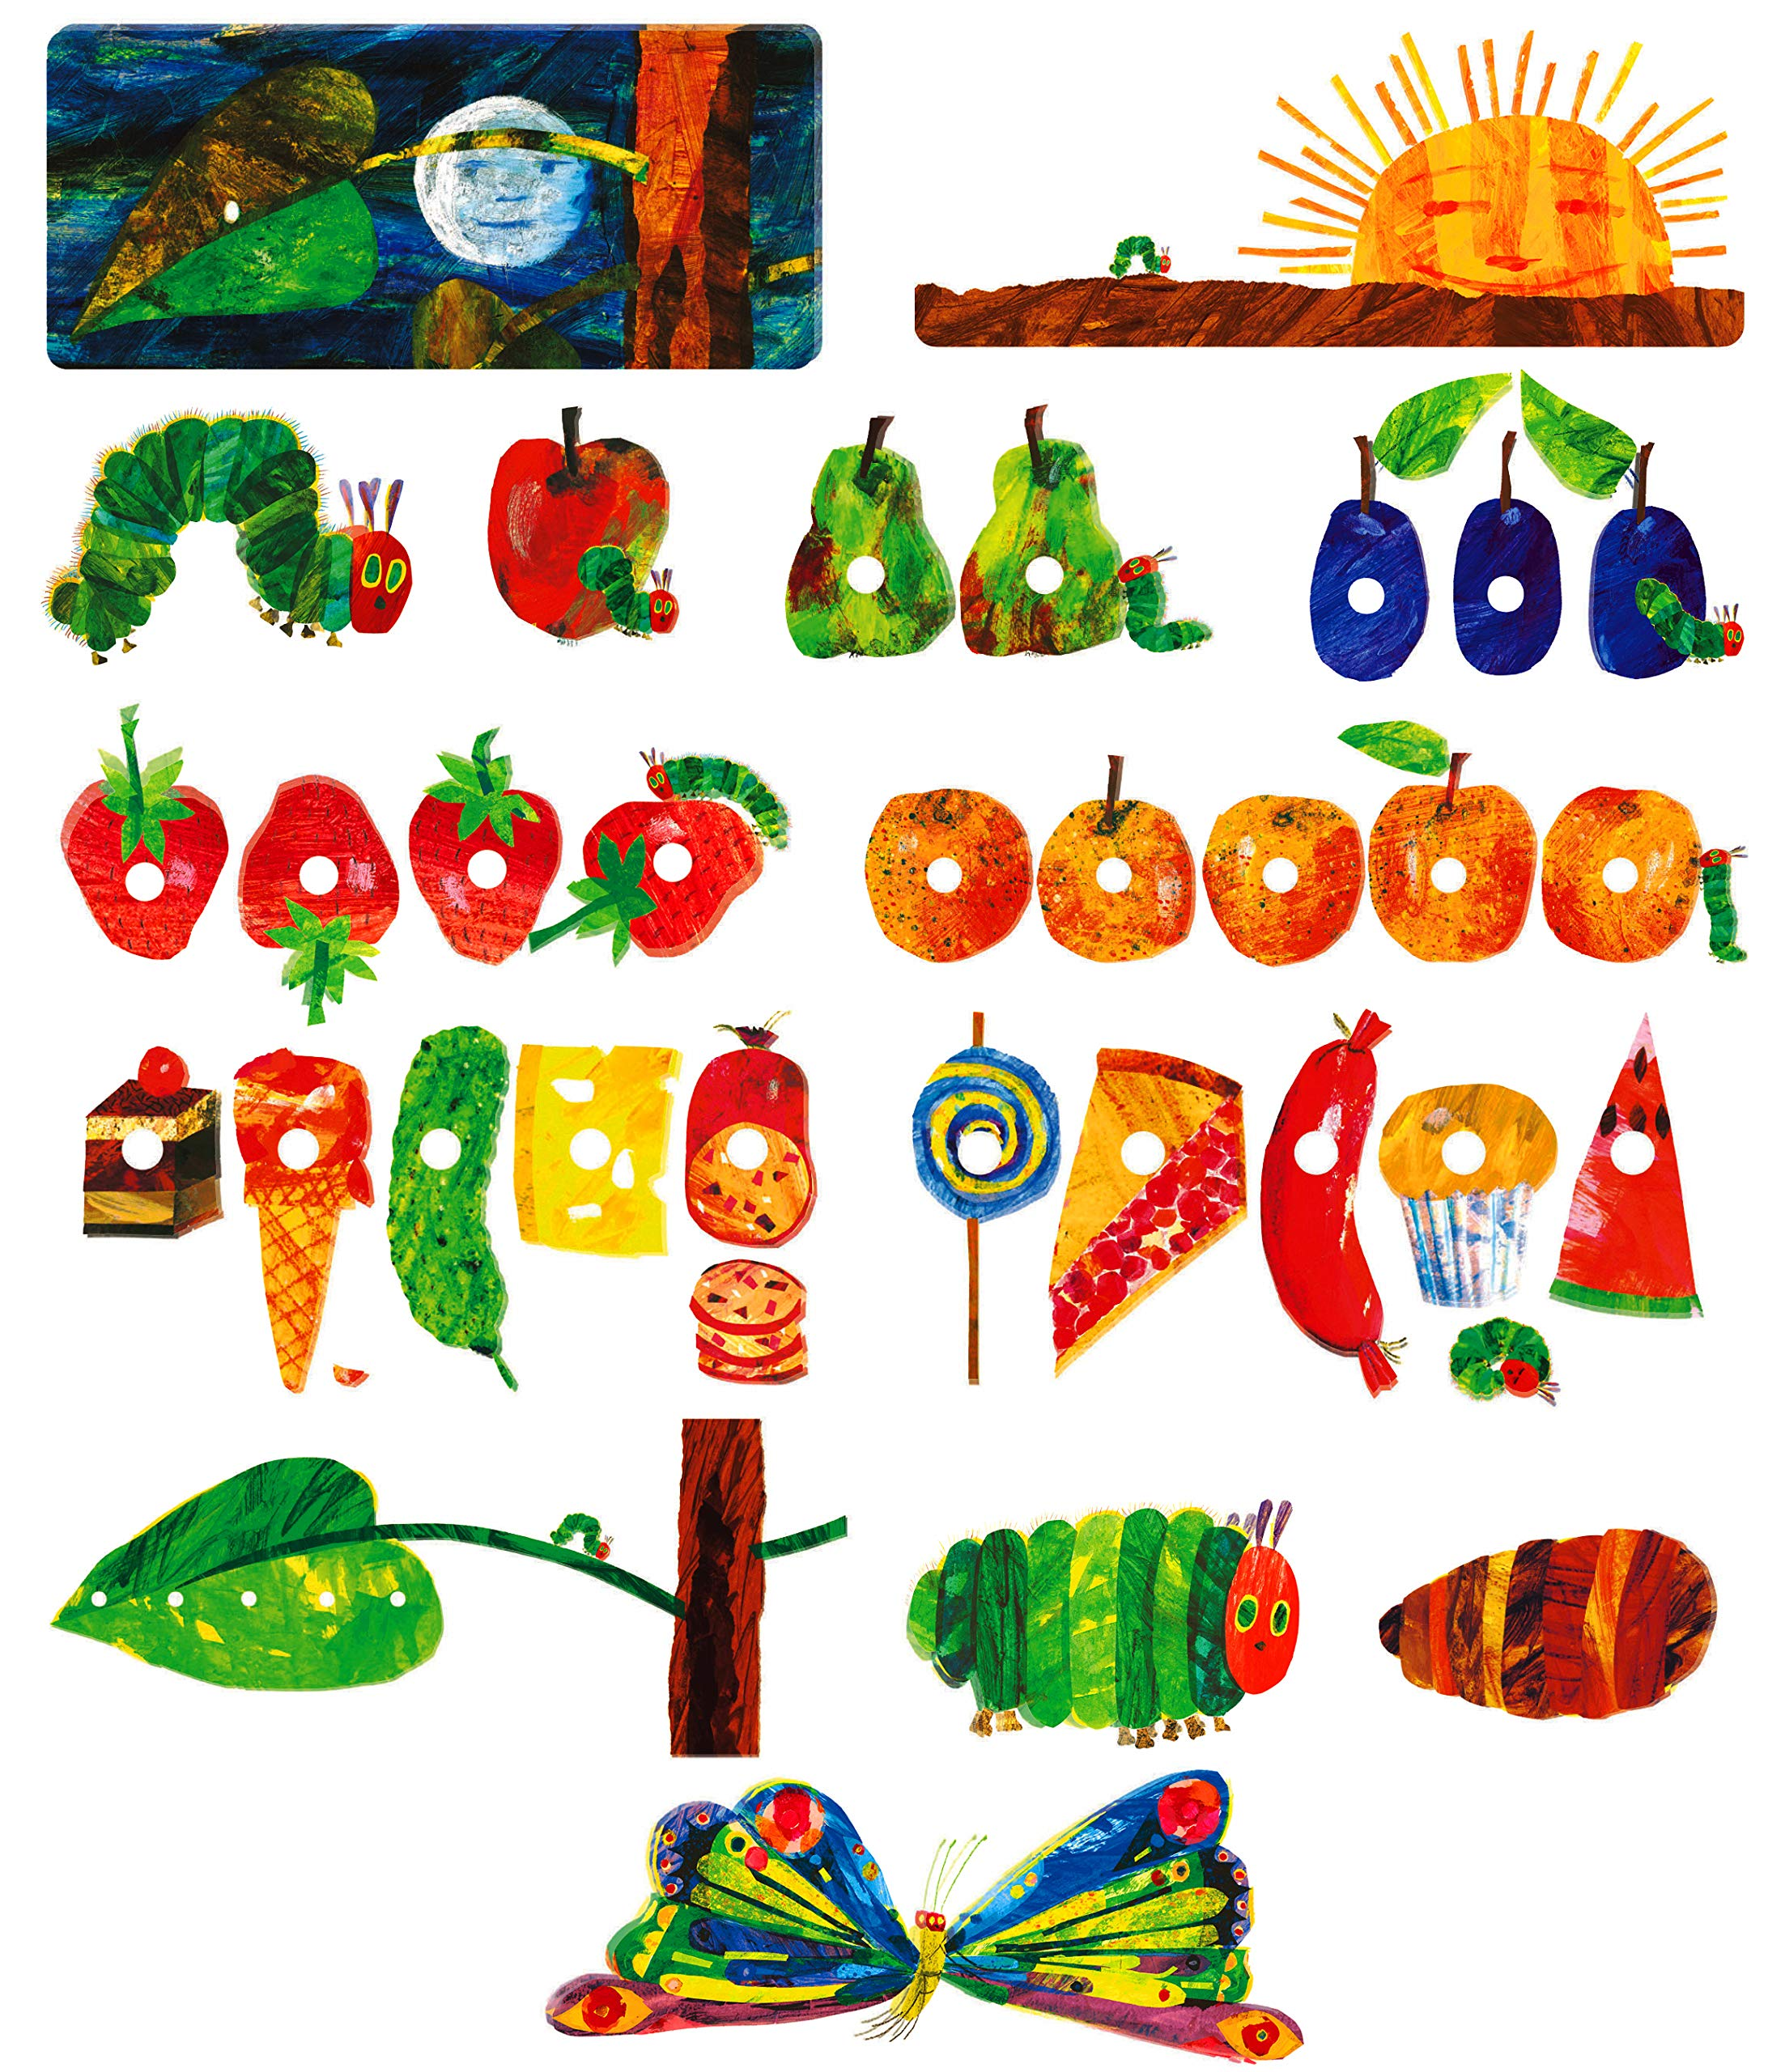 Little Folk Visuals The Very Hungry Caterpillar Precut Flannel/Felt Board Figures for Toddlers, Kindergarteners, Interactive Teaching 14-Piece Set for Flannel Board Stories by Little Folk Visuals